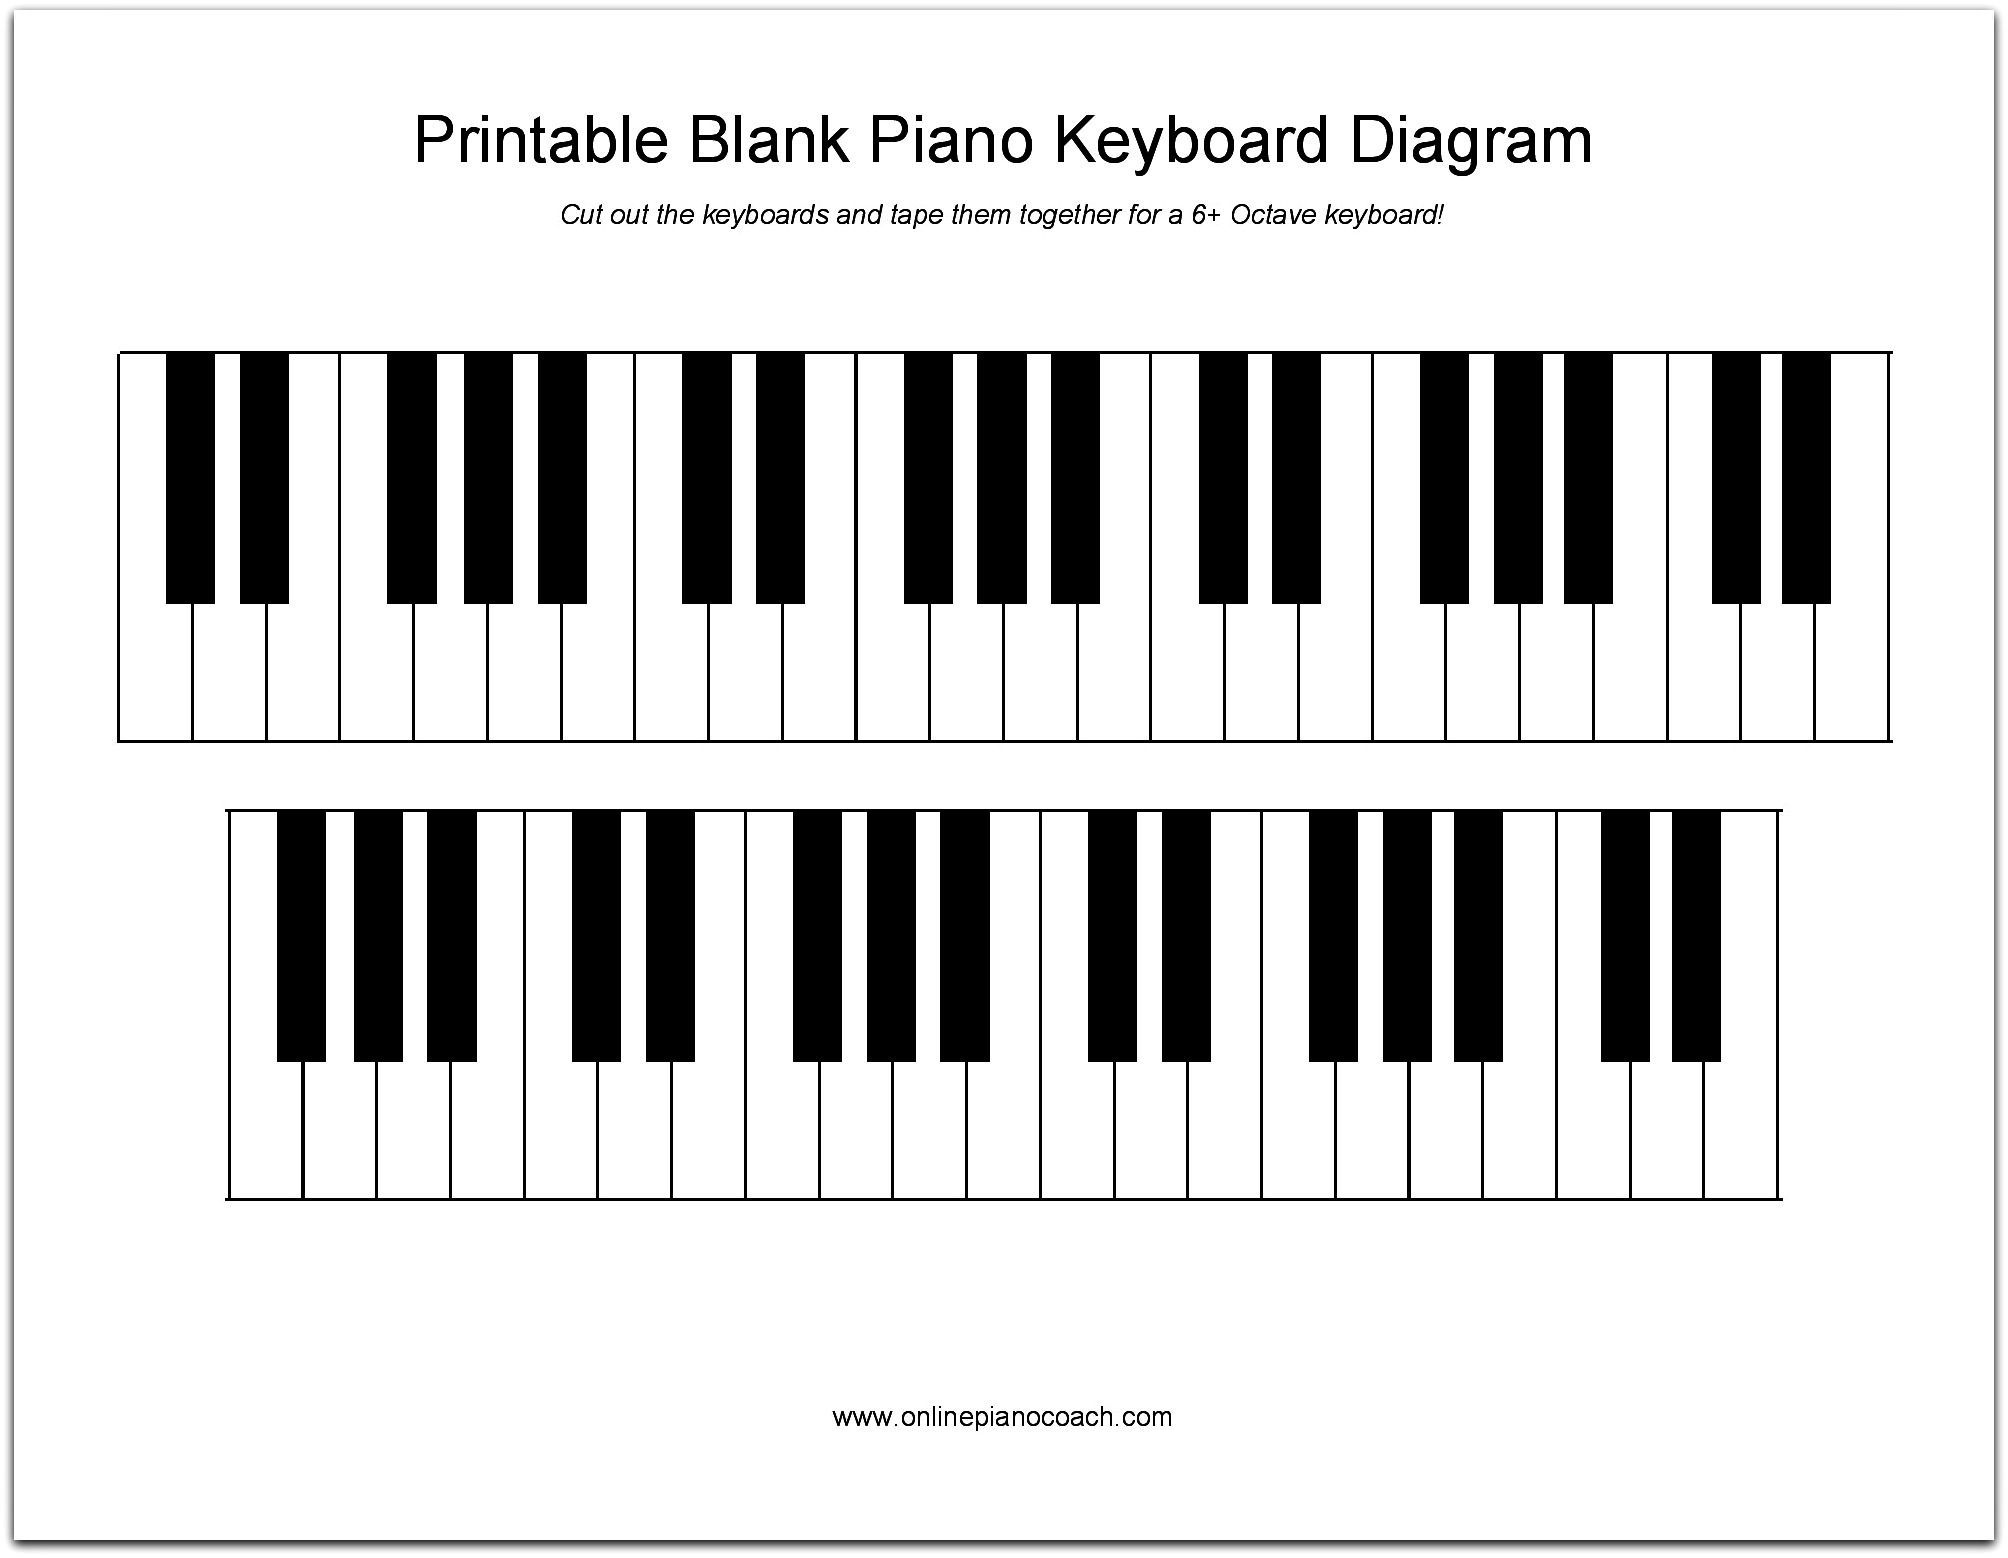 photograph about Printable Piano Keyboard Template called Diagram Of Piano - 2017 11 07 venn diagram coloration inside of my piano